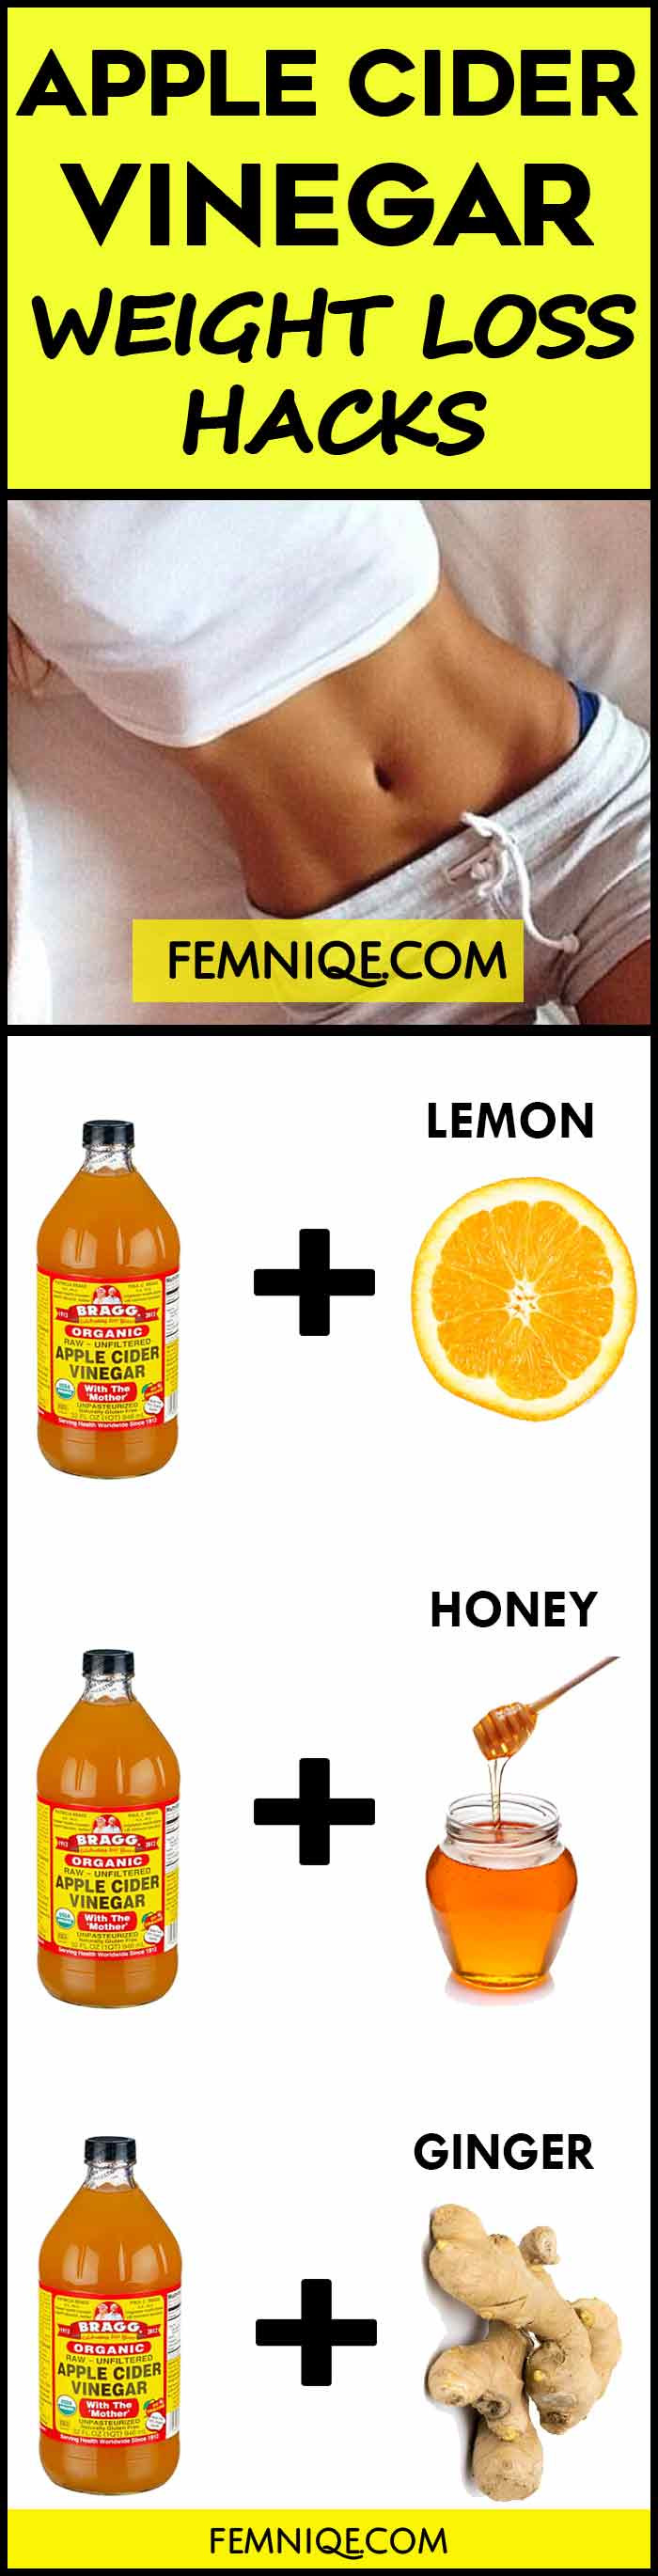 Apple Cider Vinegar Weight Loss  How To Use Apple Cider Vinegar for Weight Loss Femniqe